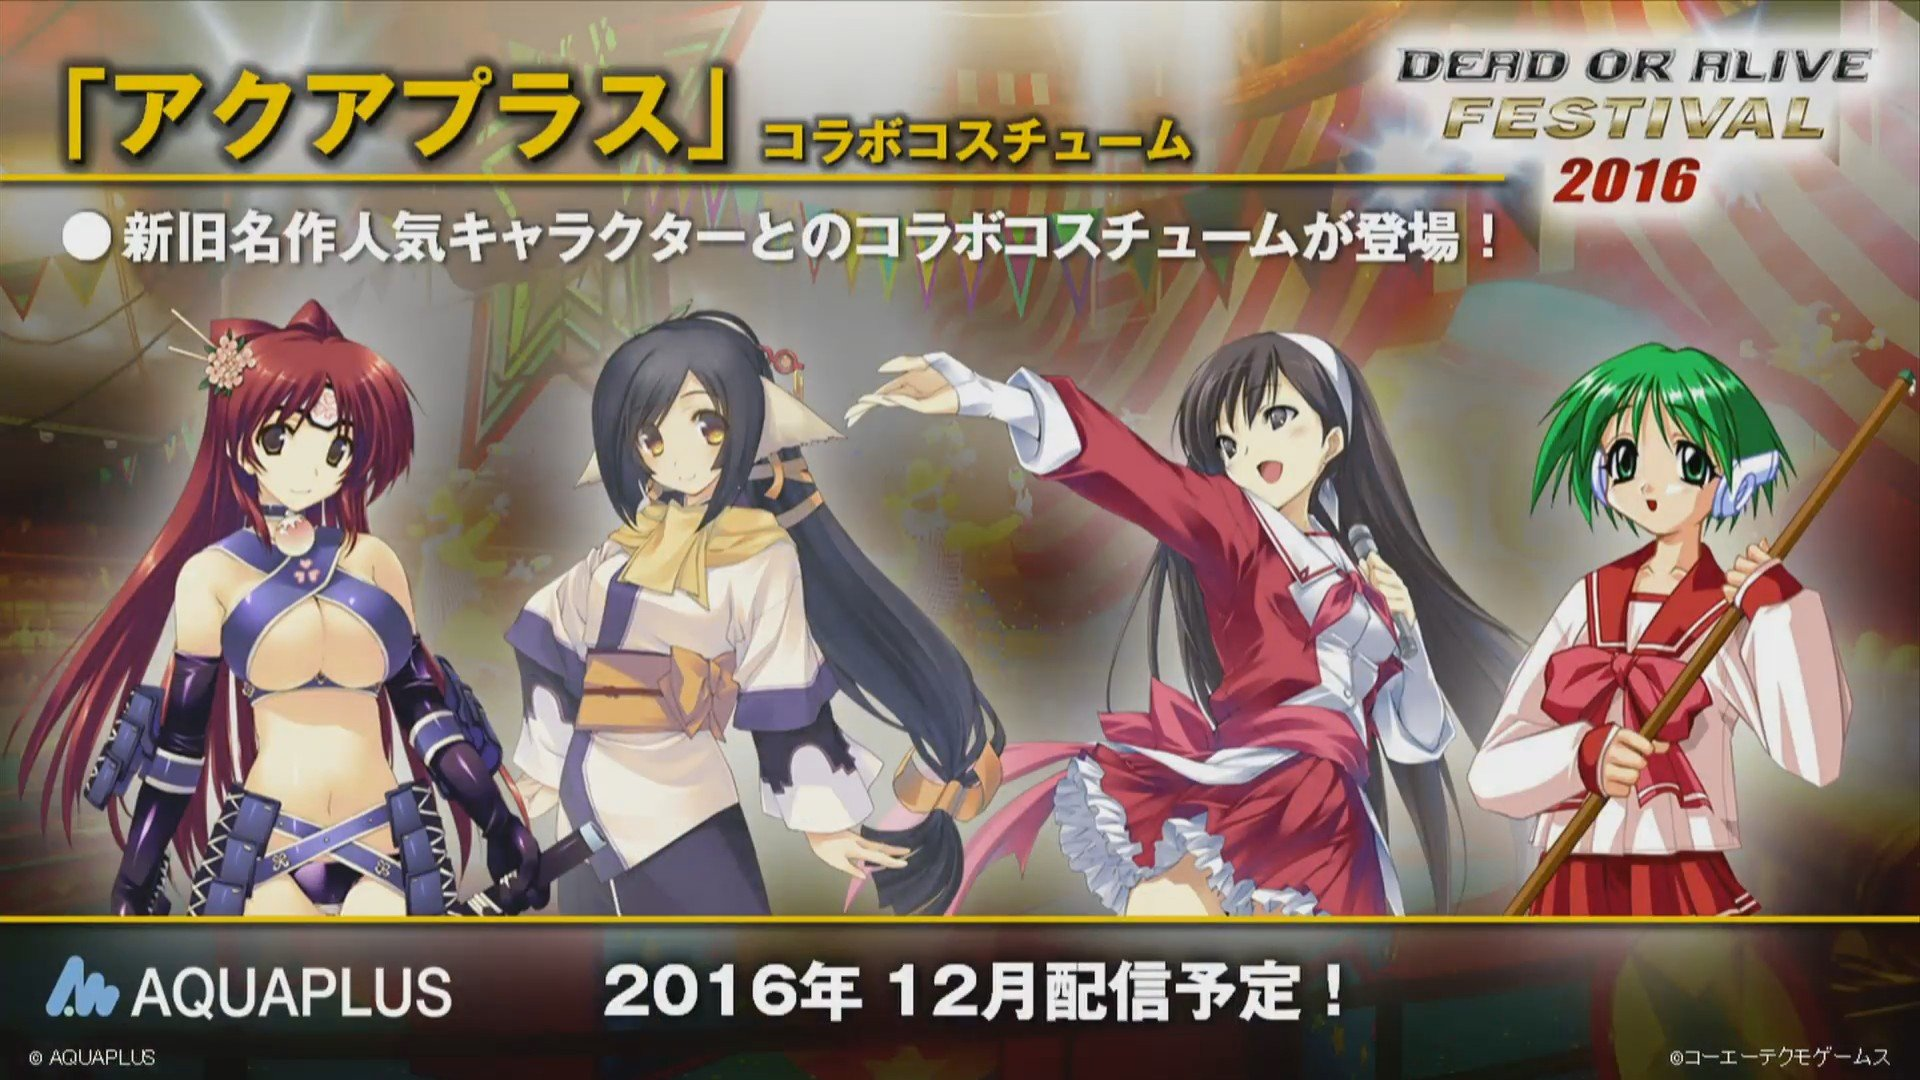 Dead Or Alive 5 Gets Kof Mai And Attack On Titan Dlc Rice Digital